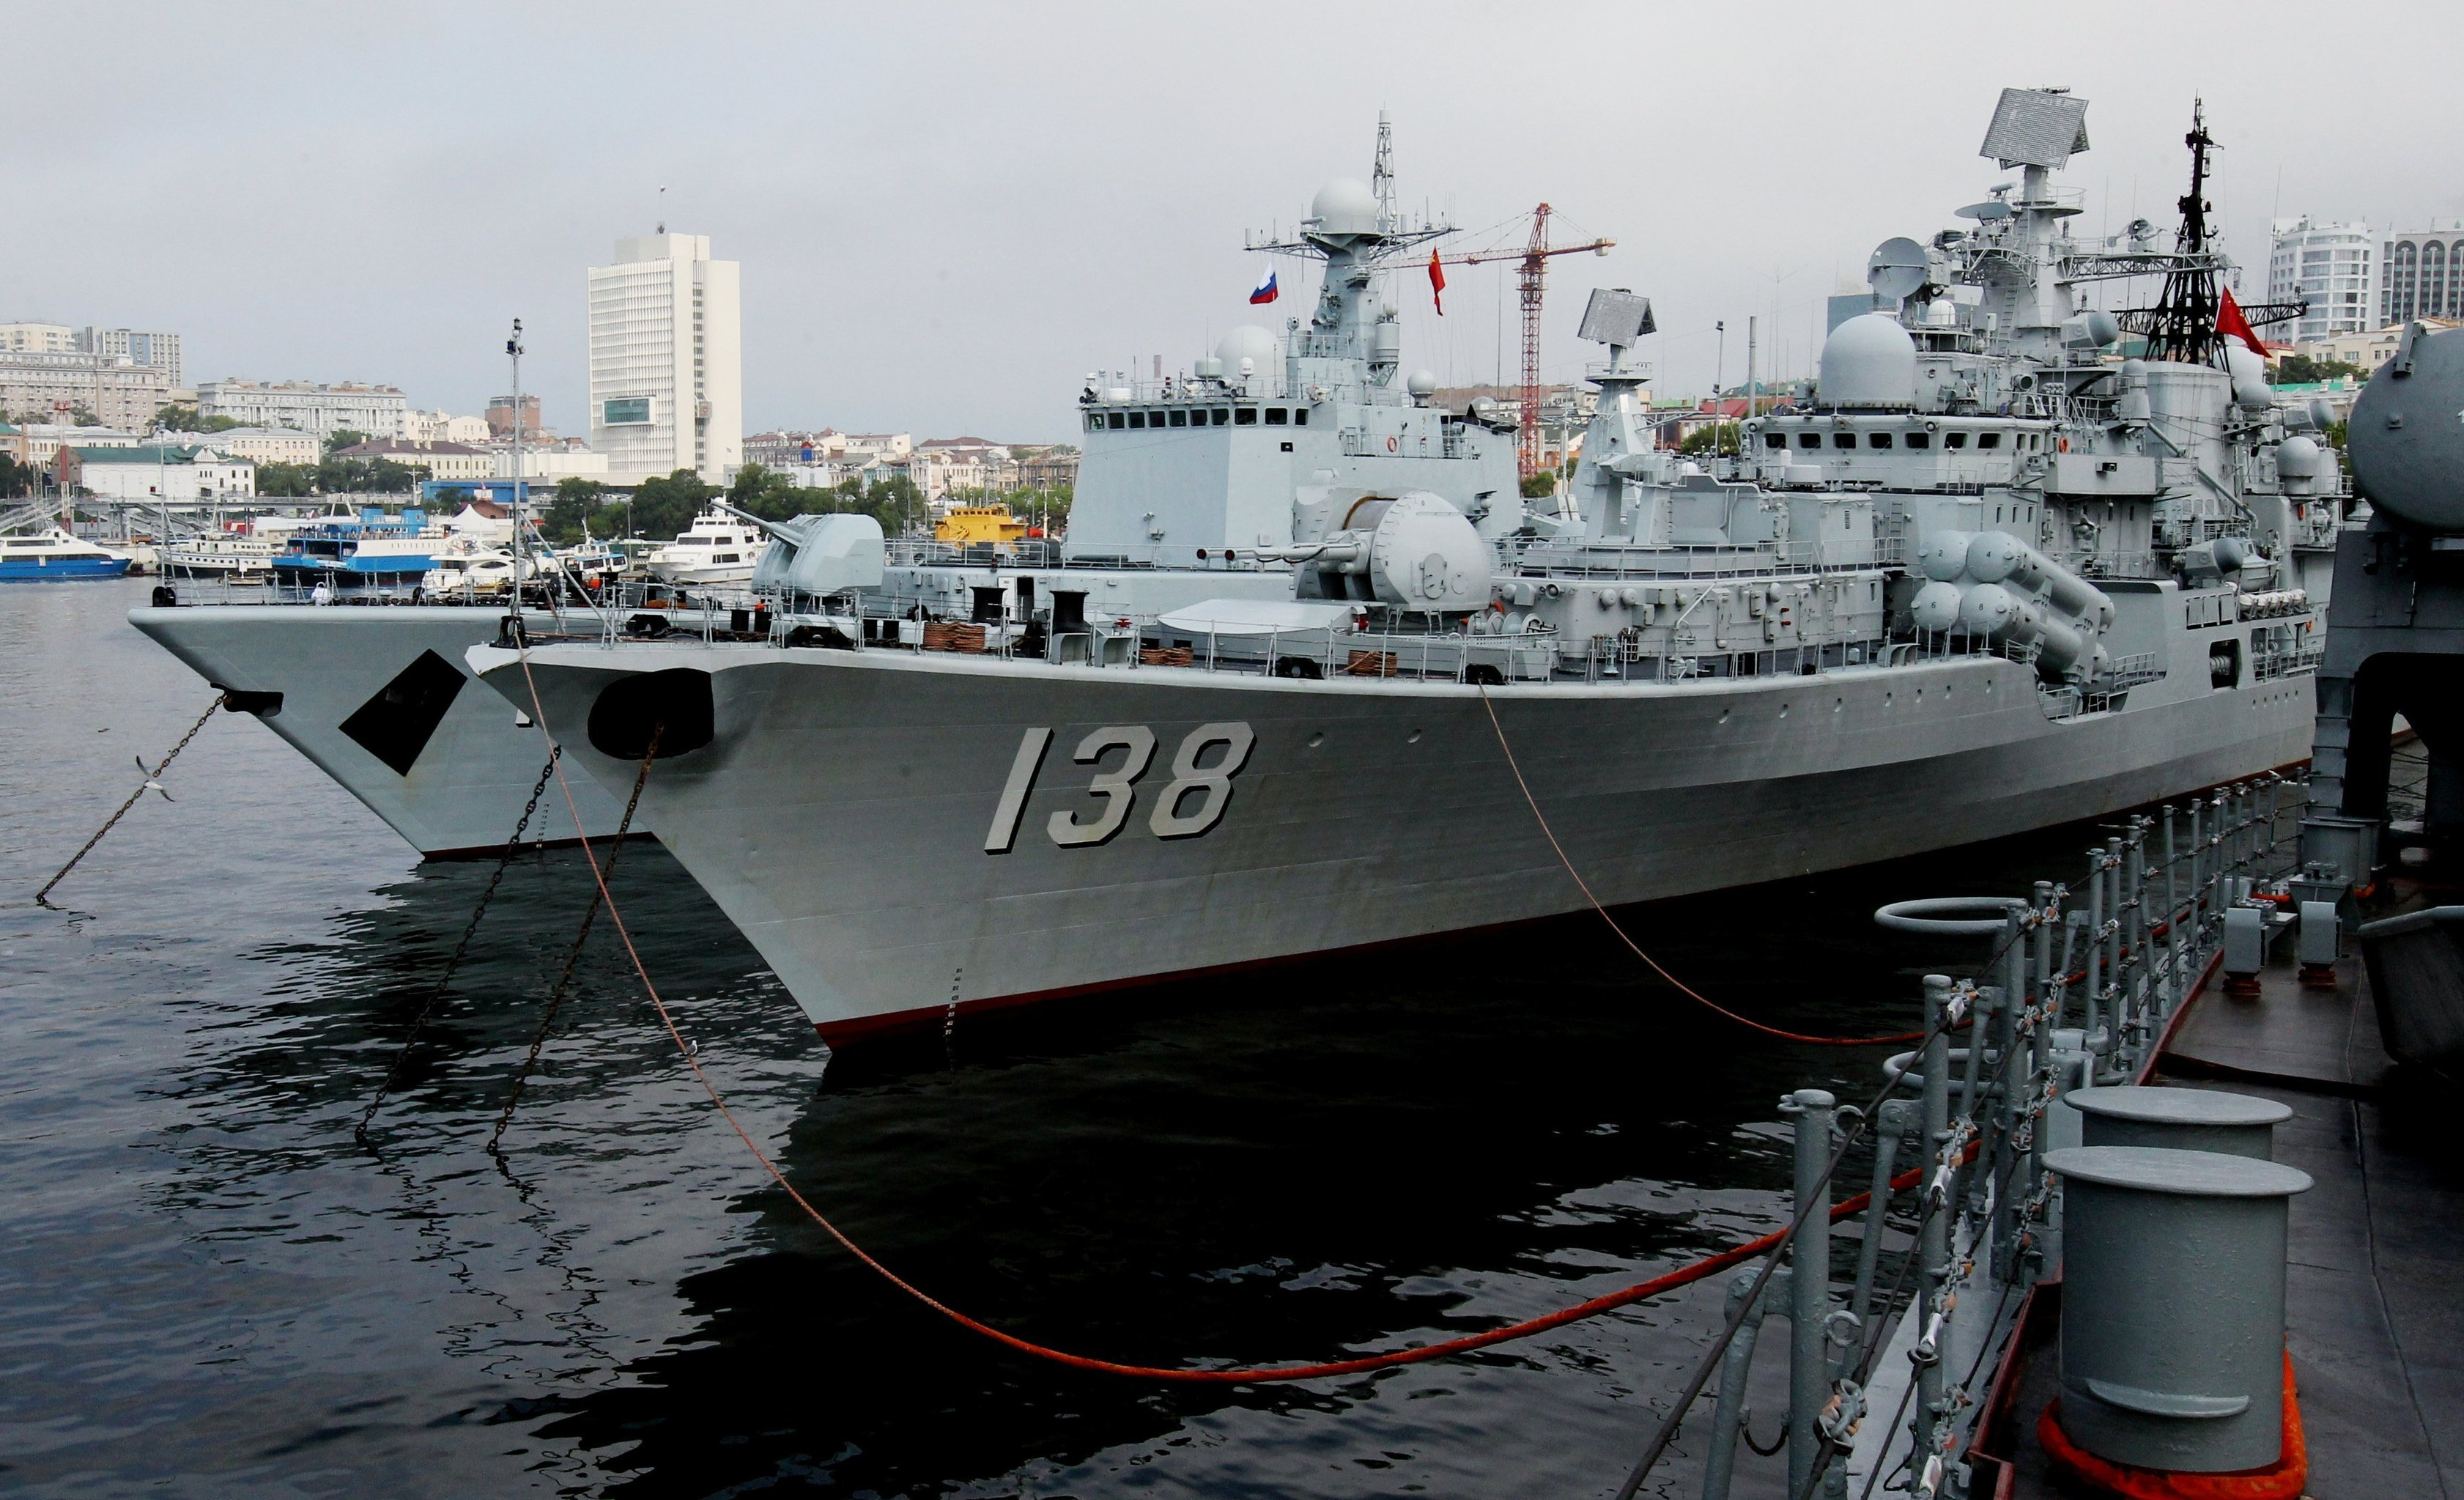 The destroyers Shenyang and Taizhou that have arrived in Vladivostok for the second stage of the Naval Cooperation 2015 exercise.